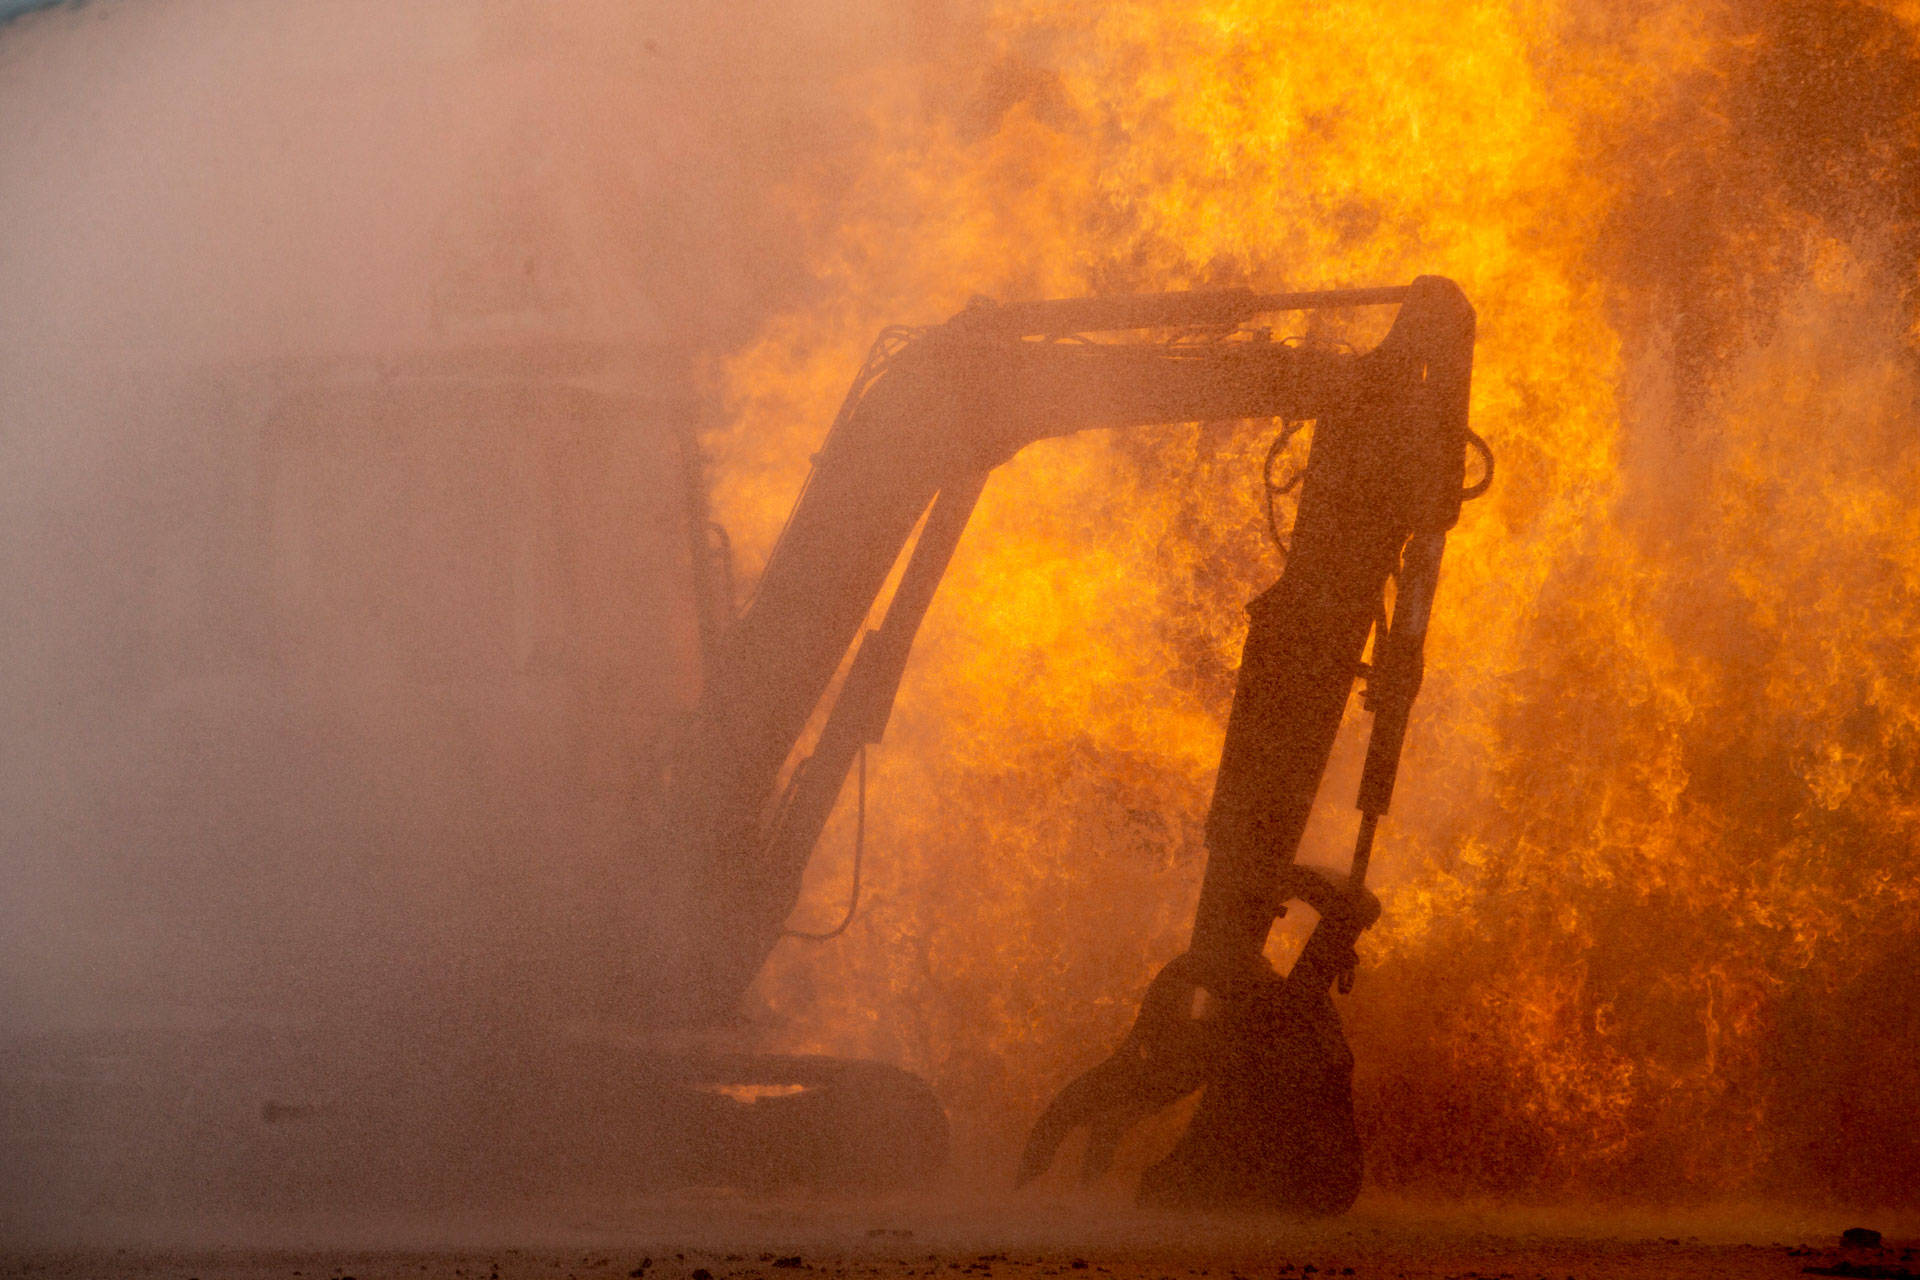 Construction equipment catches fire from a blaze following an explosion of a gas line on Feb. 6, 2019 in San Francisco's Richmond District. Santiago Mejia-Pool/Getty Images